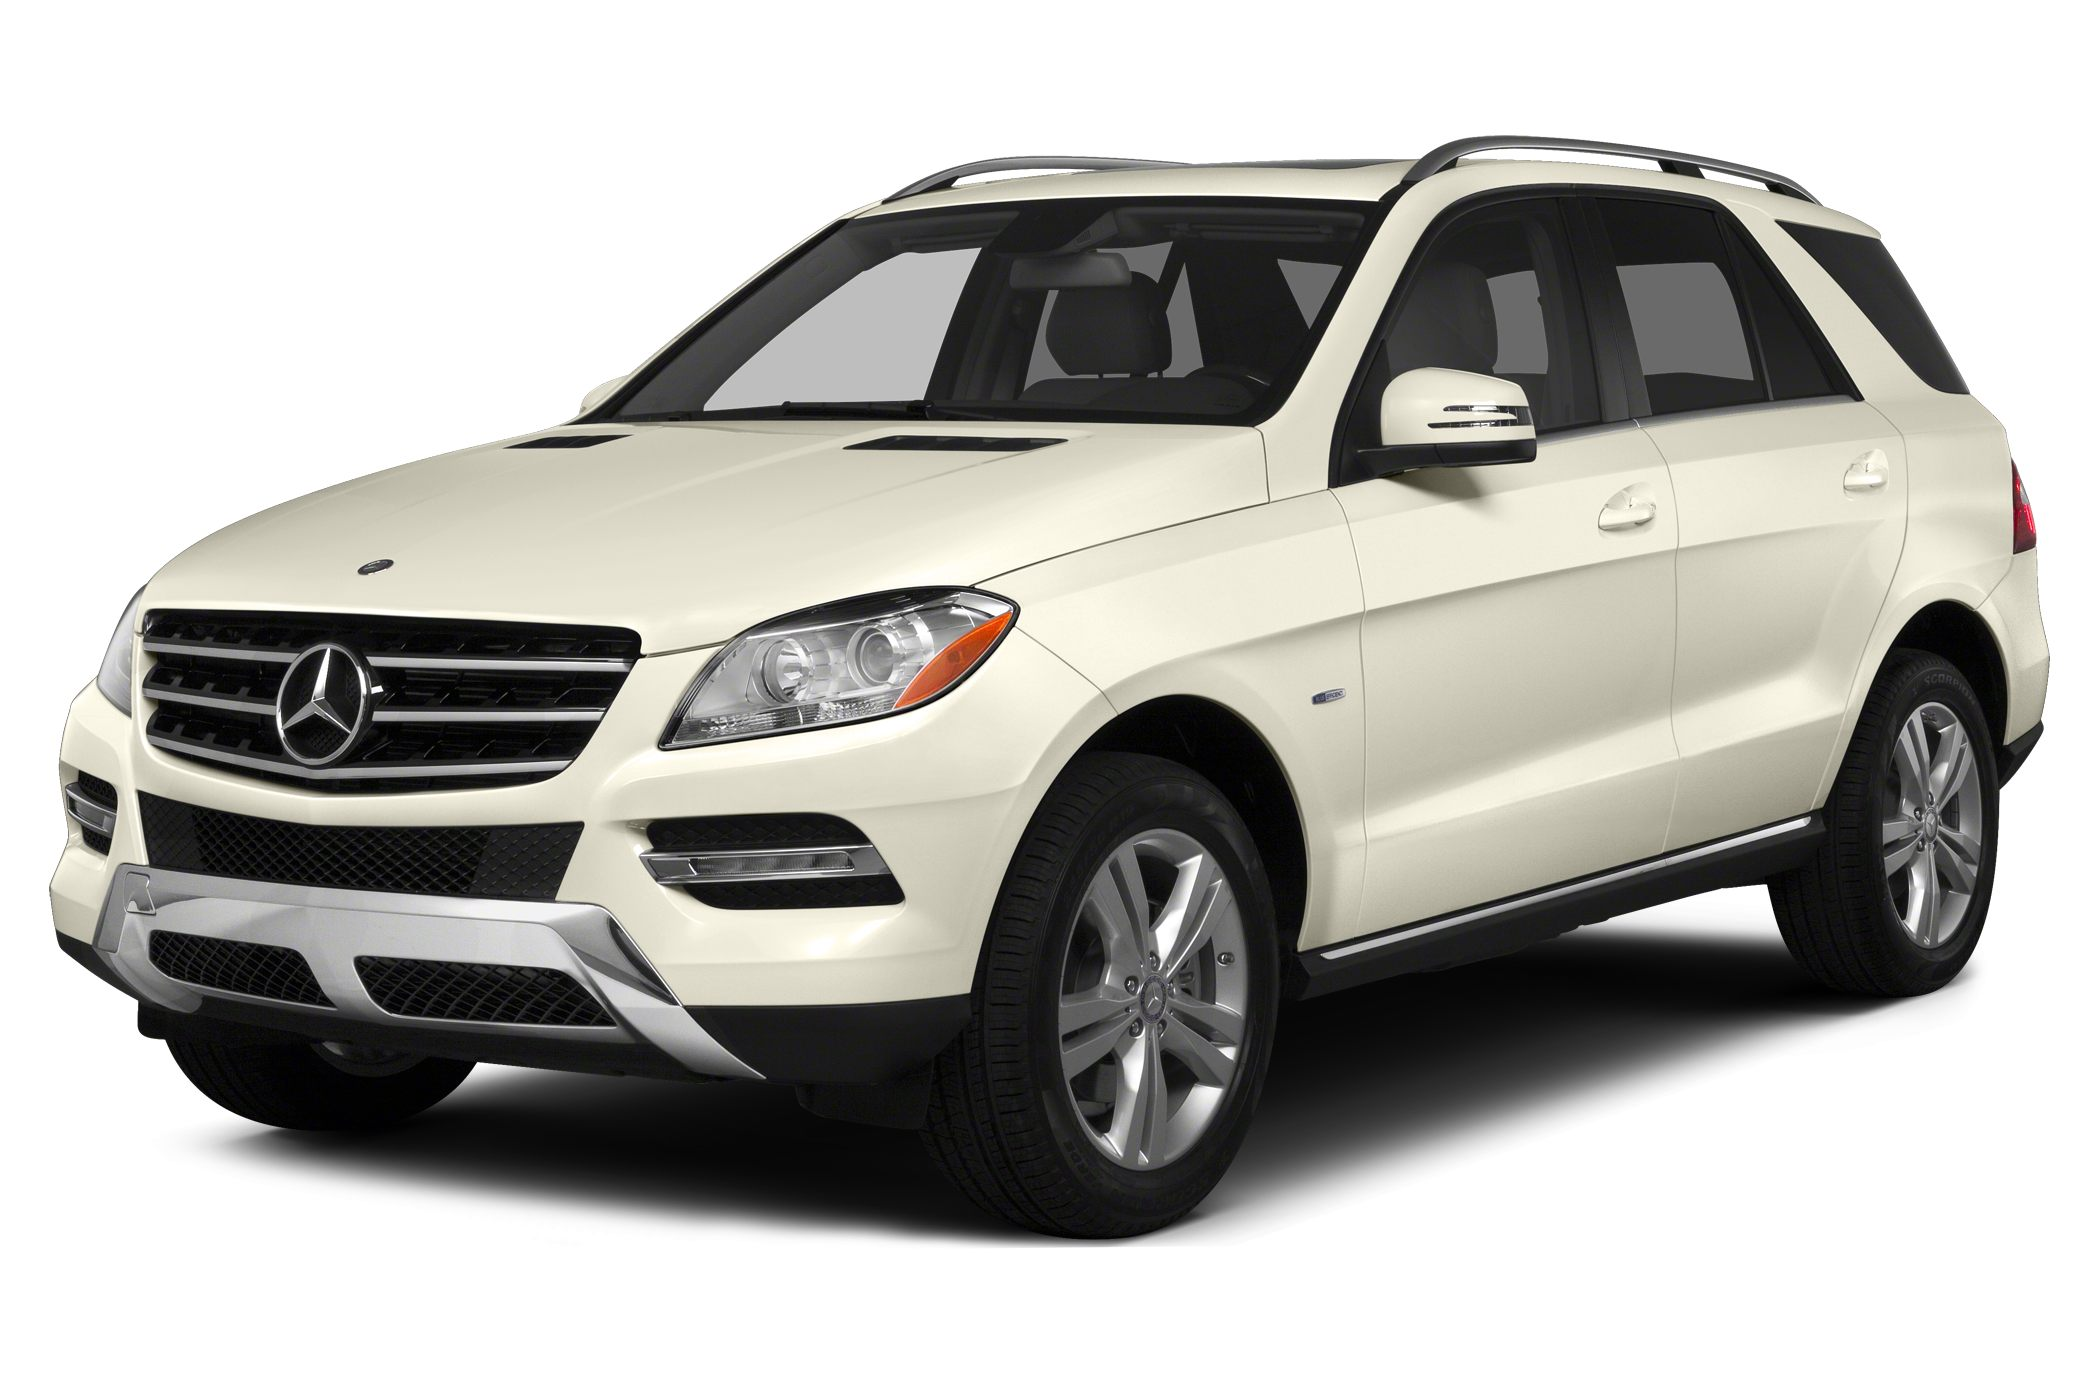 2014 MERCEDES M-Class ML350 Proudly serving manatee county for over 60 years offering Cars Trucks